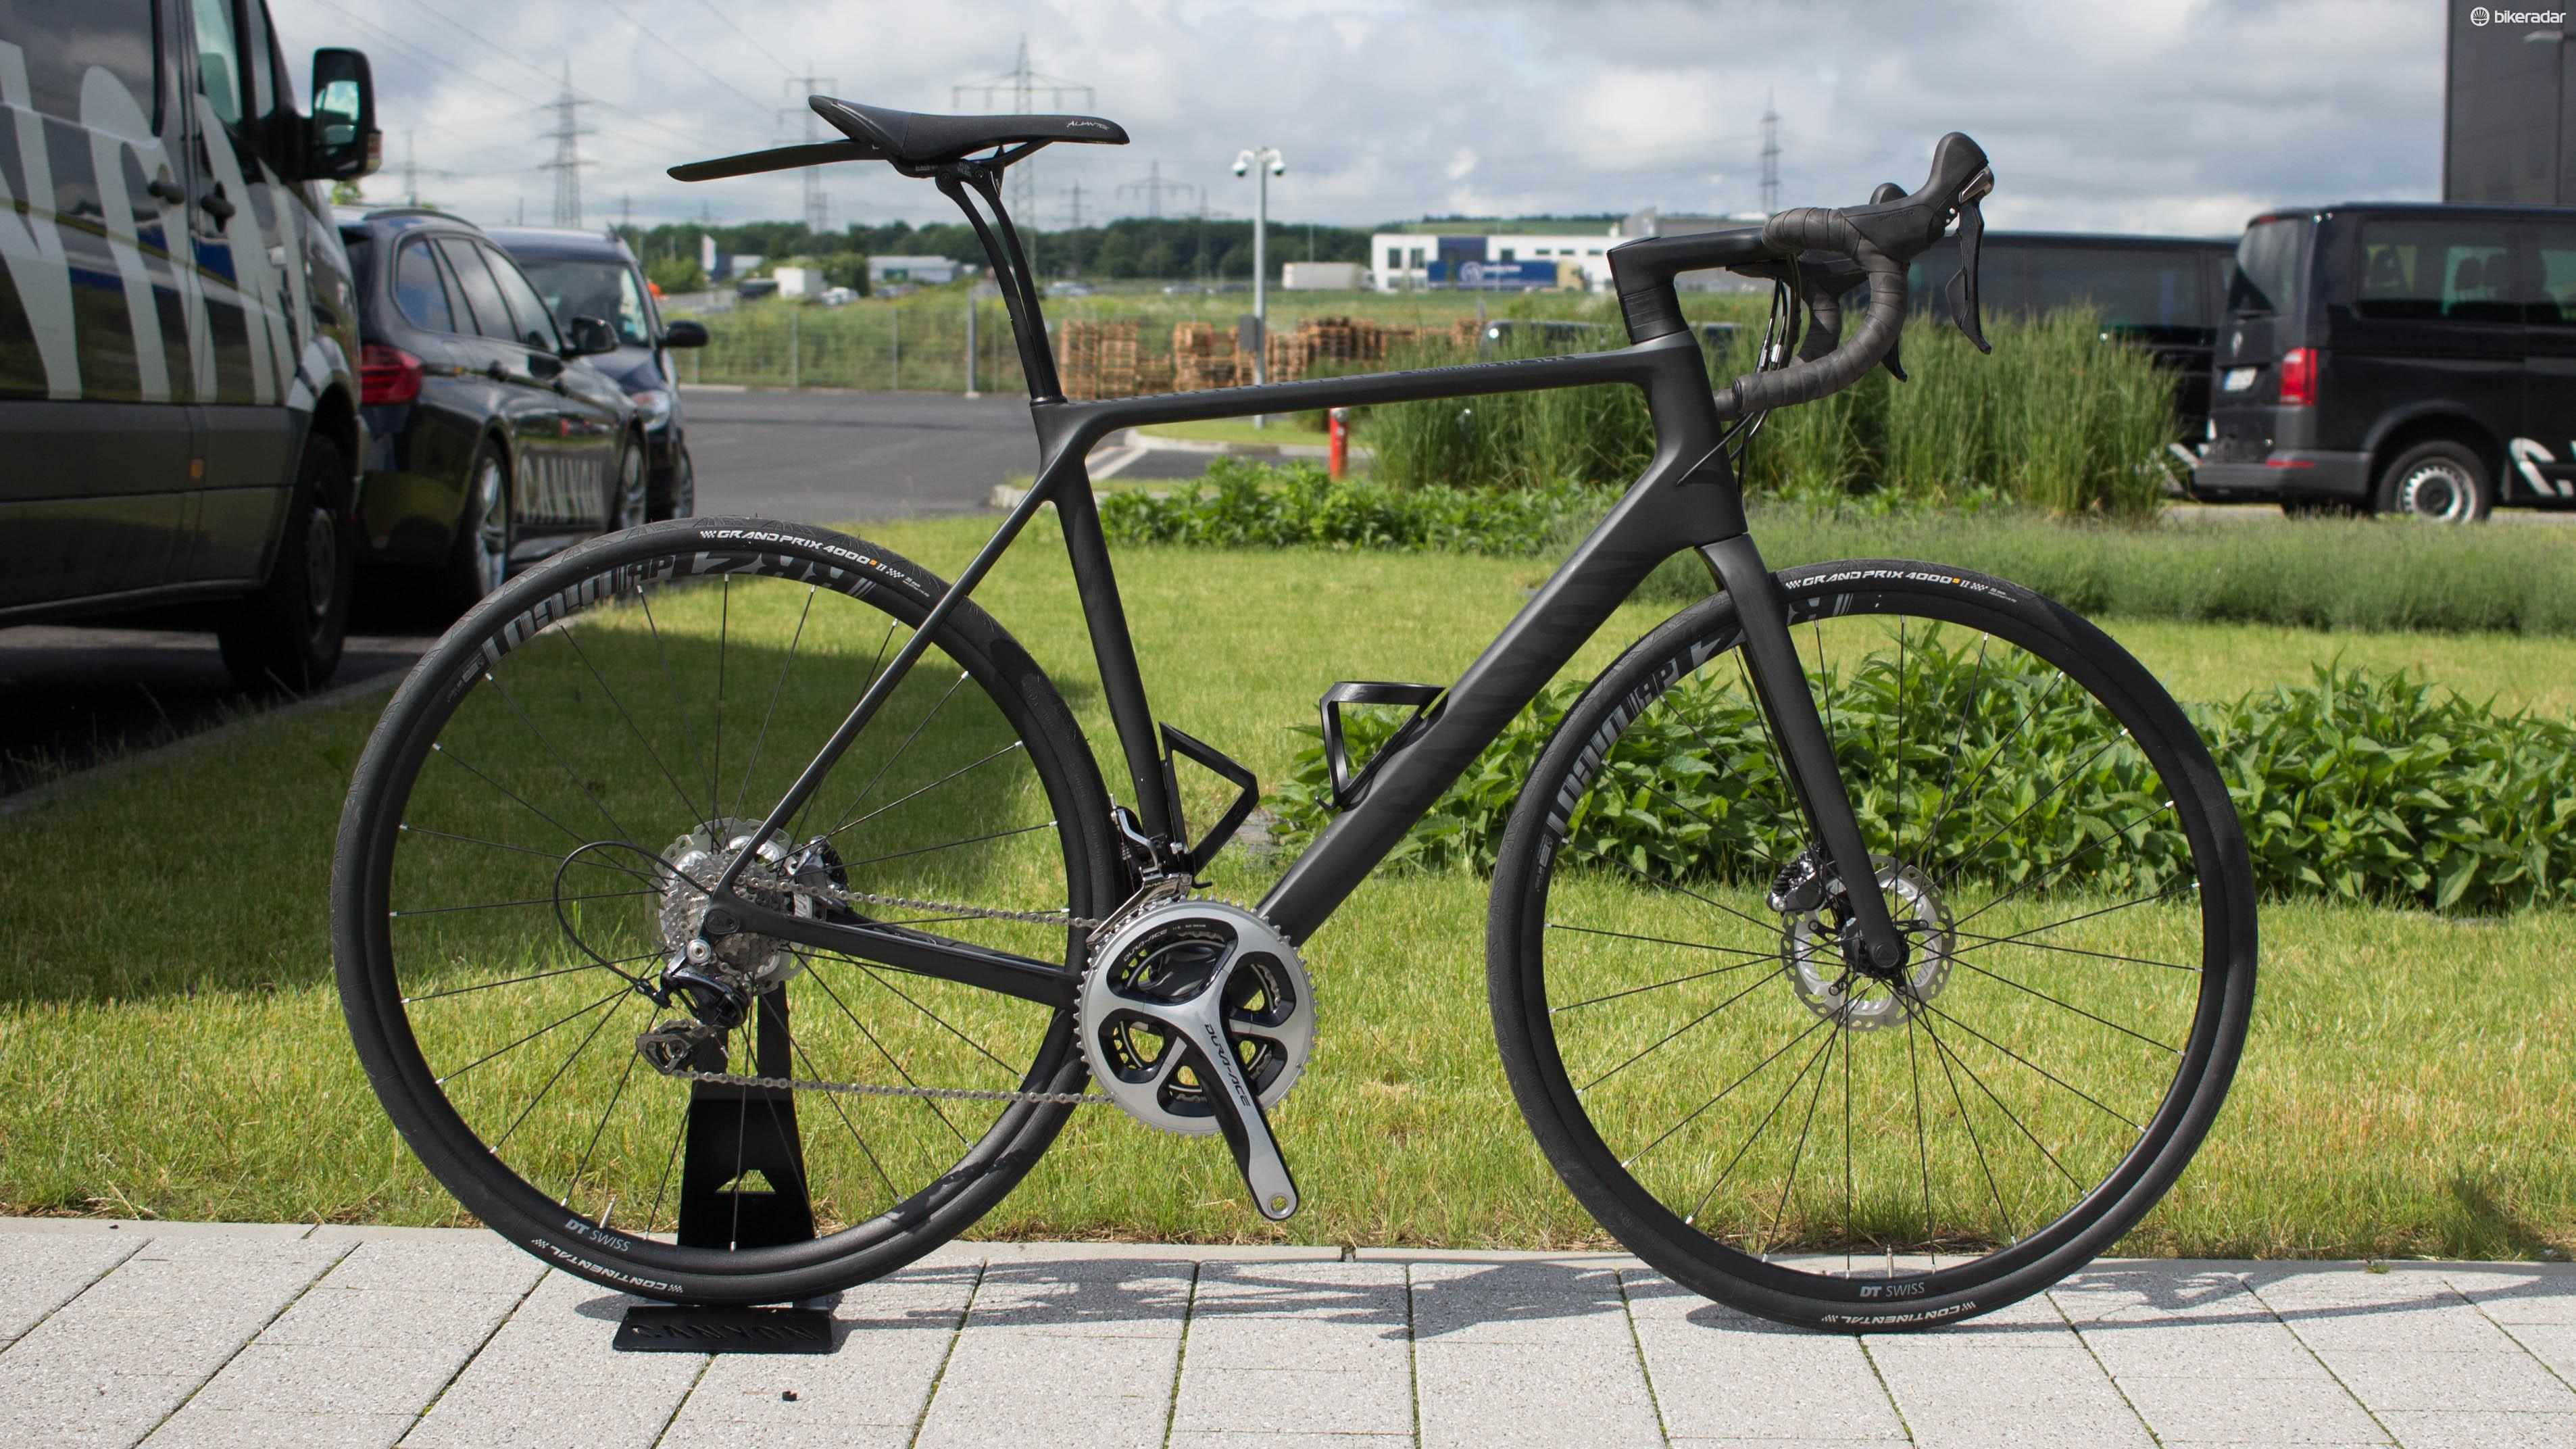 Canyon's new Endurace CF SLX is designed to be very comfy, yet fast